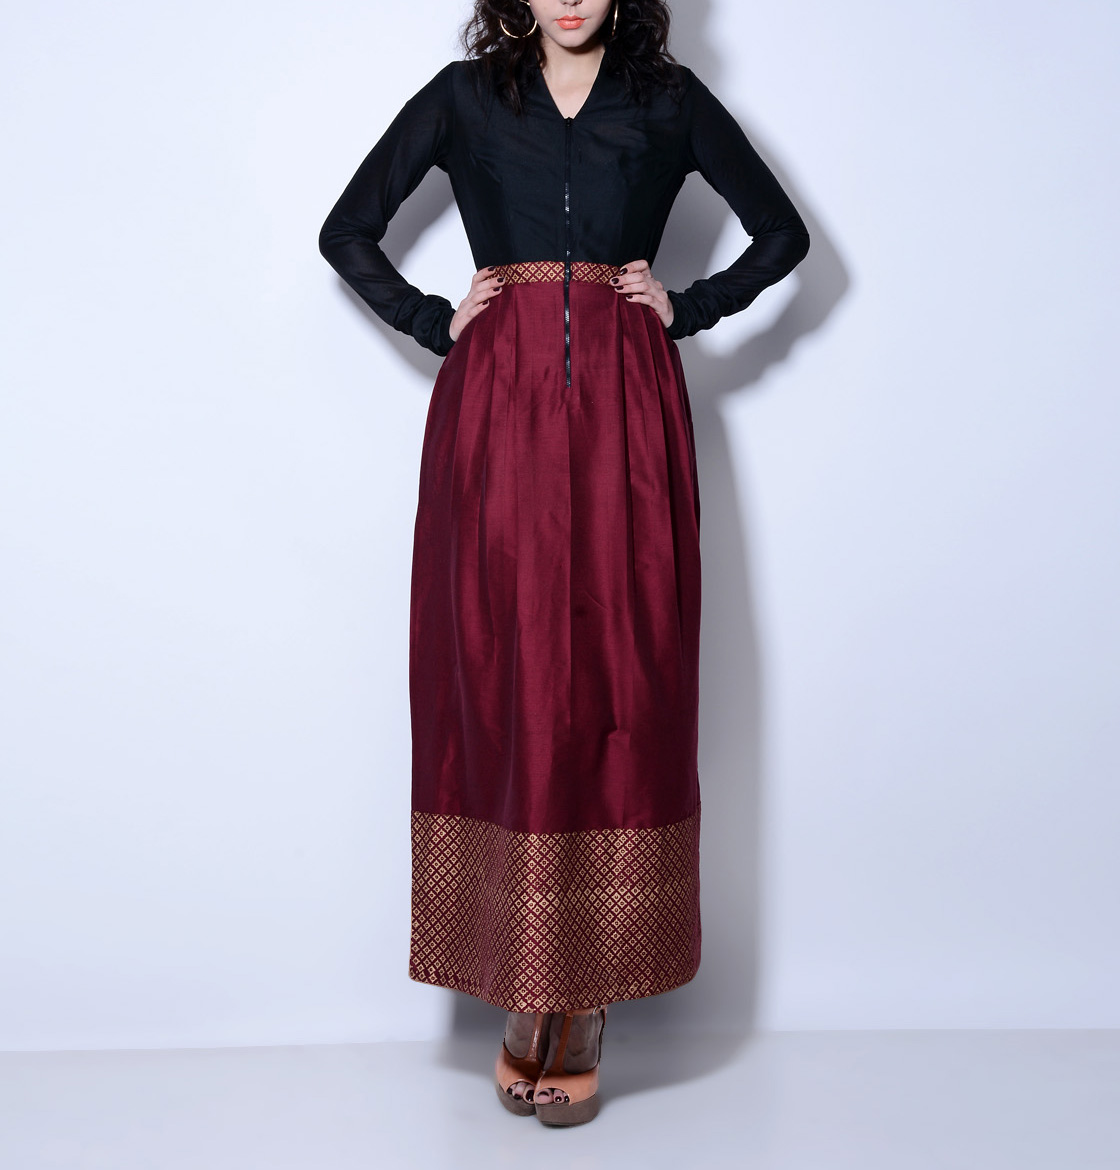 Maroon and black maxi dress